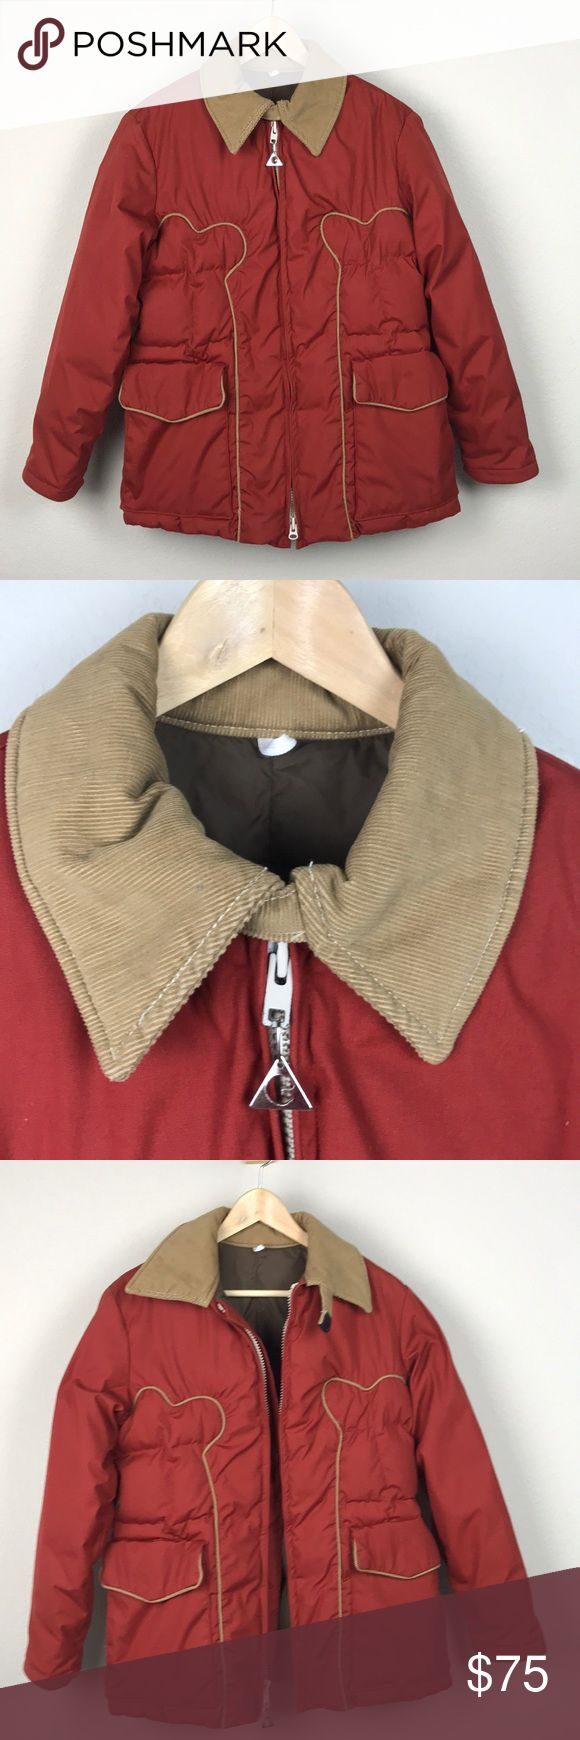 """VTG Gerry Burnt Orange Western Down Coat USA VTG Gerry burnt orange and tan corduroy down filled winter coat with western styling trim on front and back, corduroy collar, two front pockets, and a big thick zipper up the front. A Denver, CO brand, this jacket truly shows off Denver's """"Cow Town"""" history, and fits right in with the early 80s Stranger Things look I am obsessed with. Great vintage condition, only some red color transference on the collar shown in pics, otherwise looks great! Tag…"""